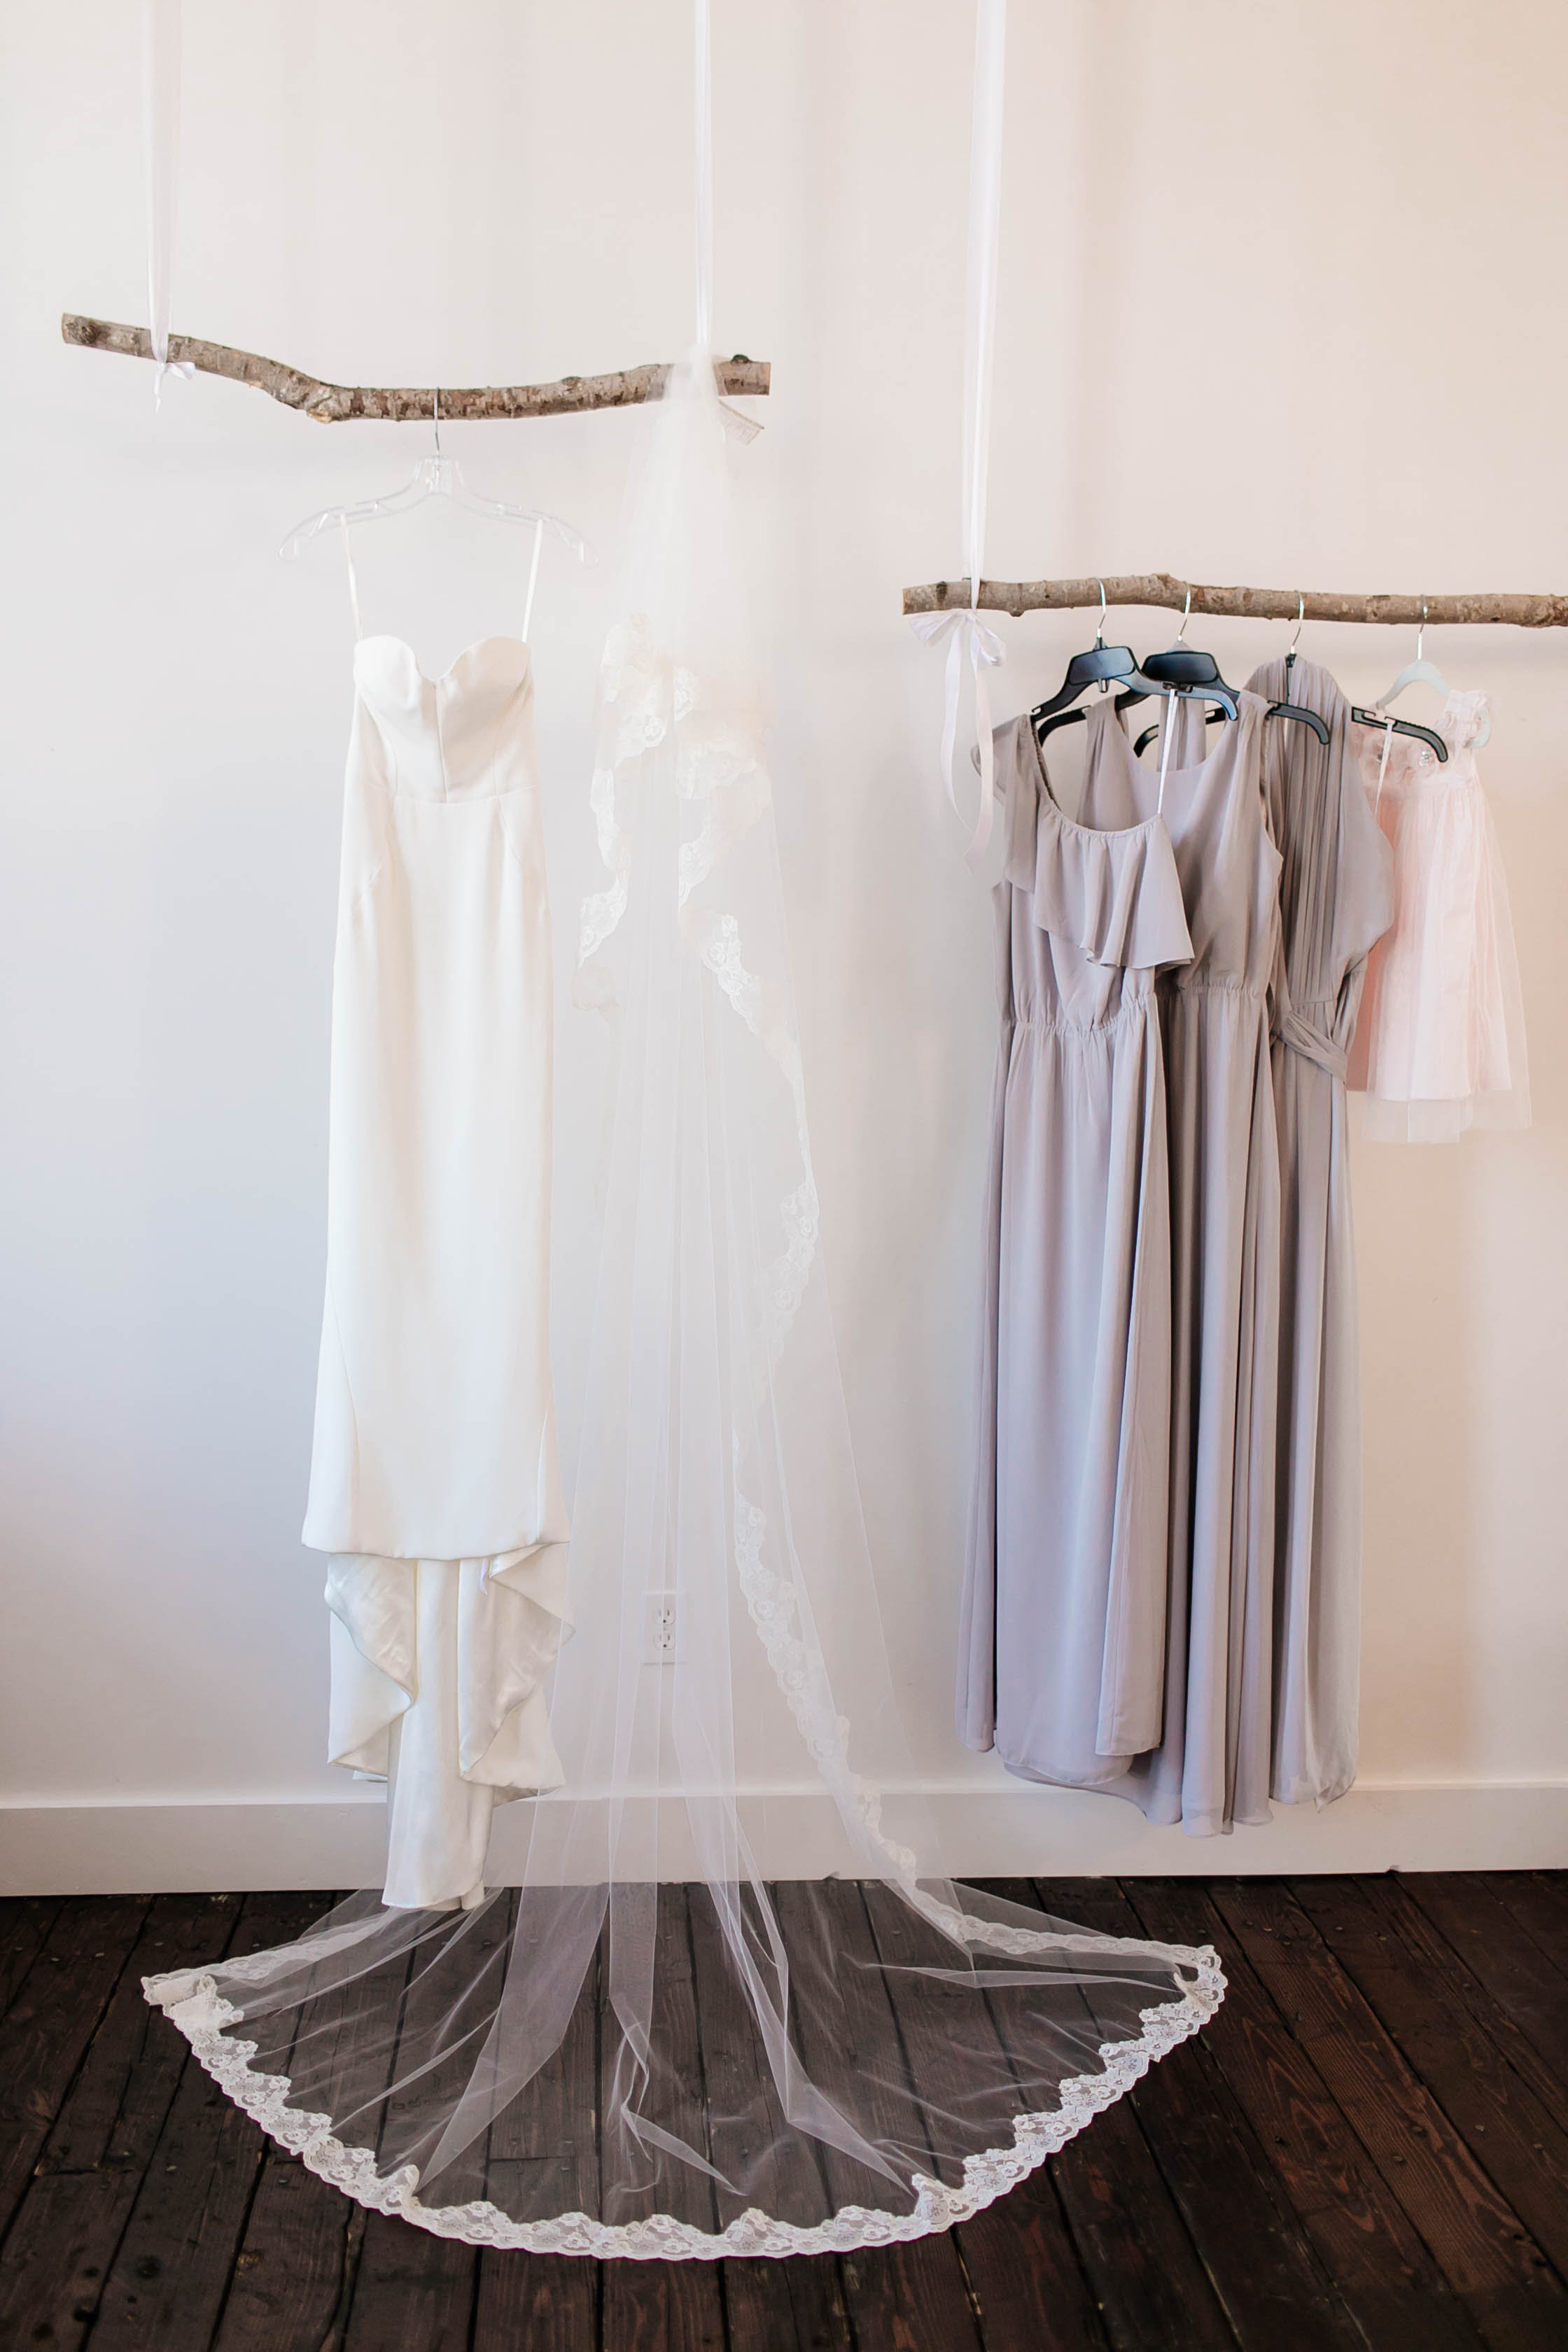 How to Capture Your Getting Ready Photos | Leah Fontaine Photography | Getting ready photos dress hanging from branch